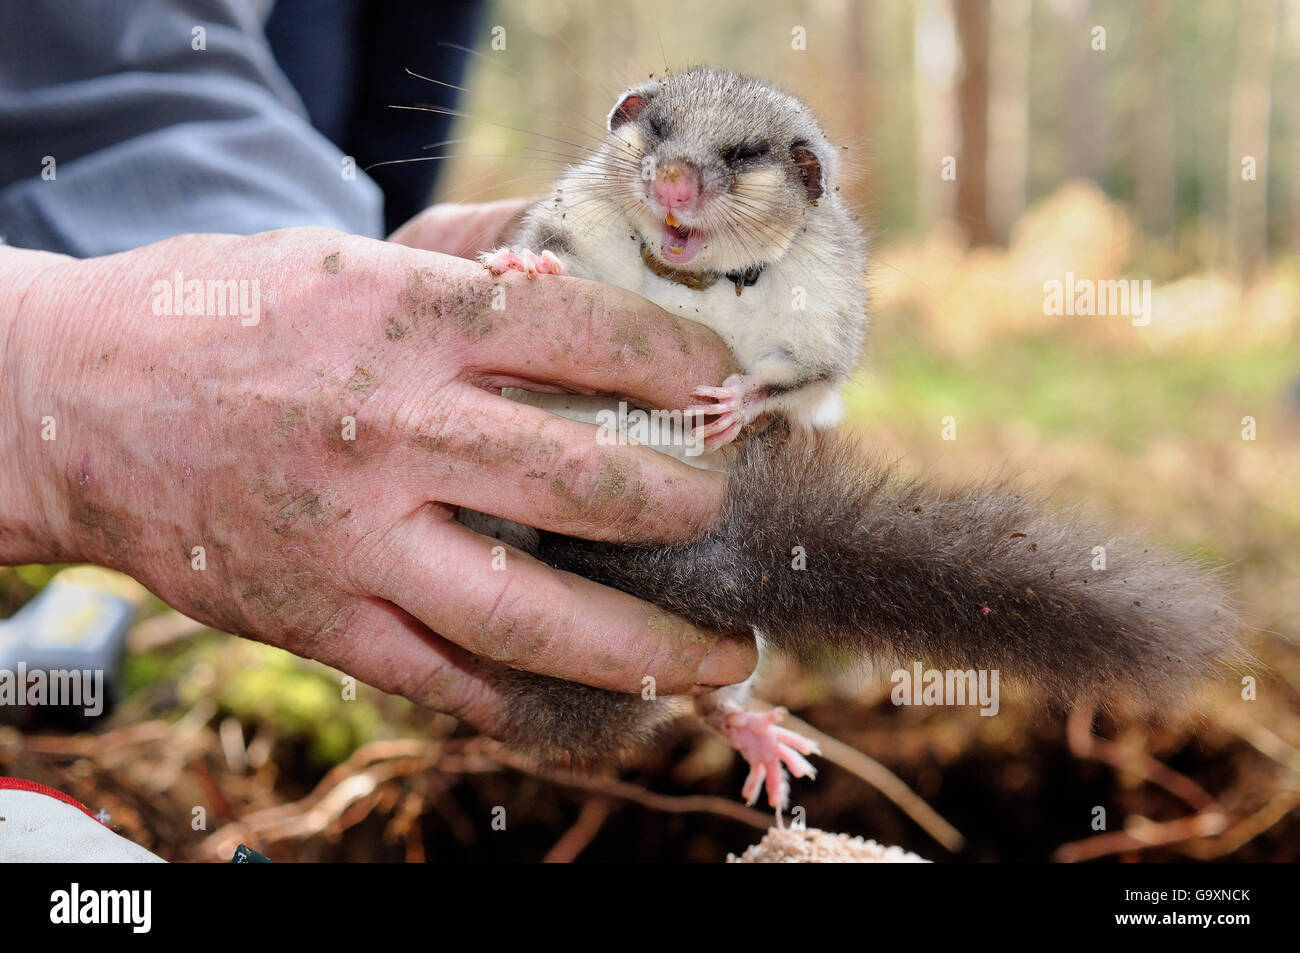 Sleepy, radio-collared Edible / Fat Dormouse (Glis glis) excavated from its winter hibernation burrow held during - Stock Image